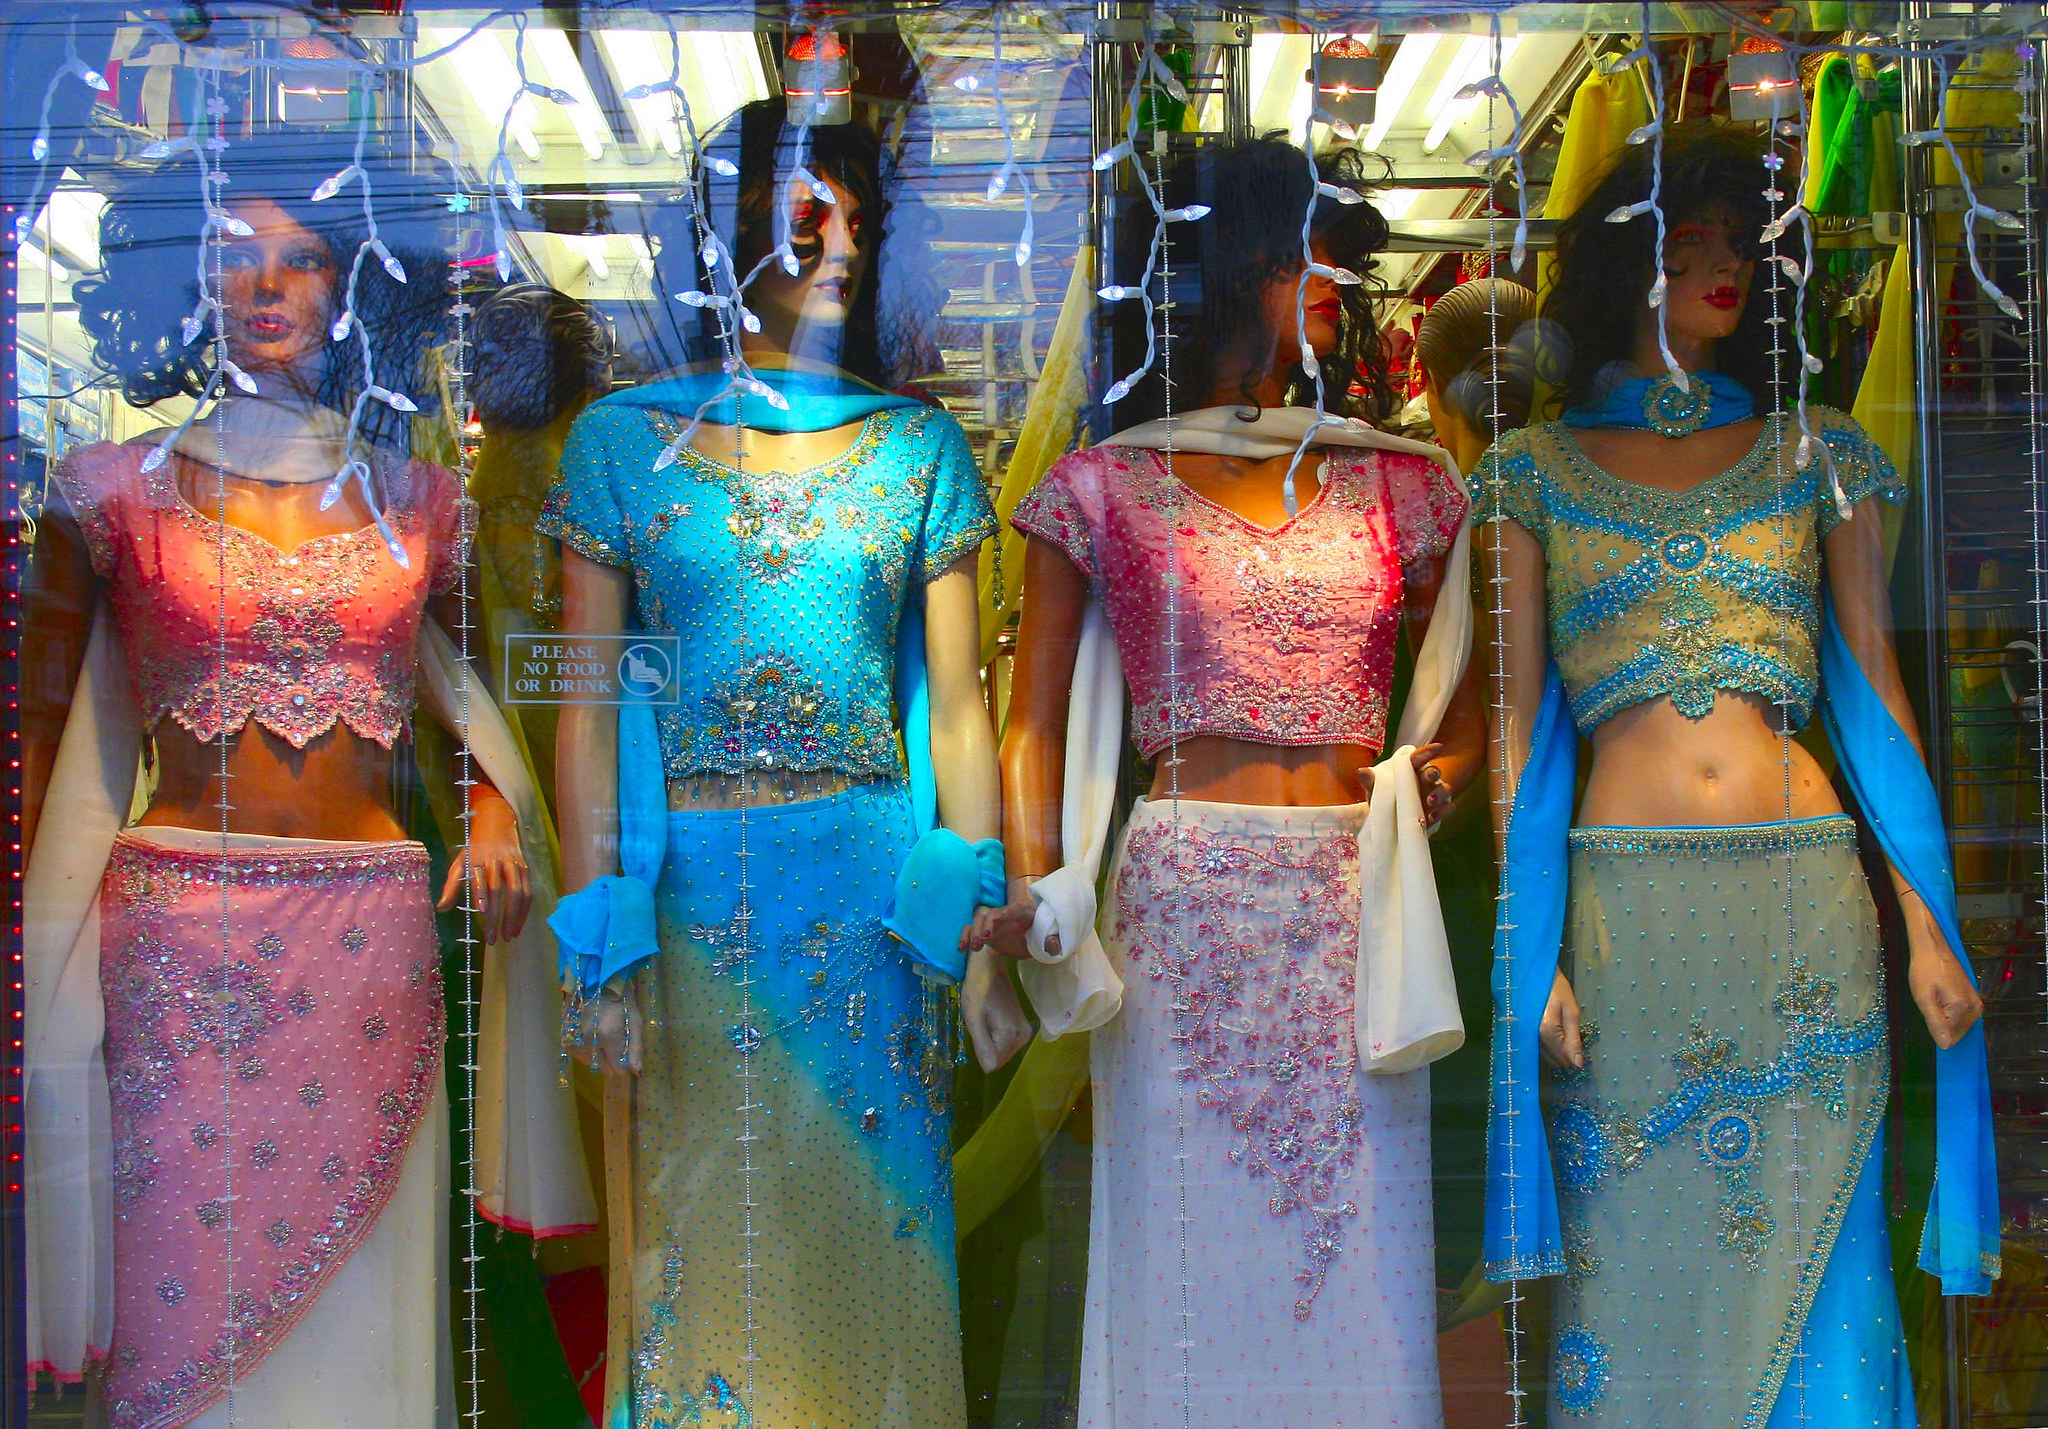 Top 10 Shops In Little India Toronto